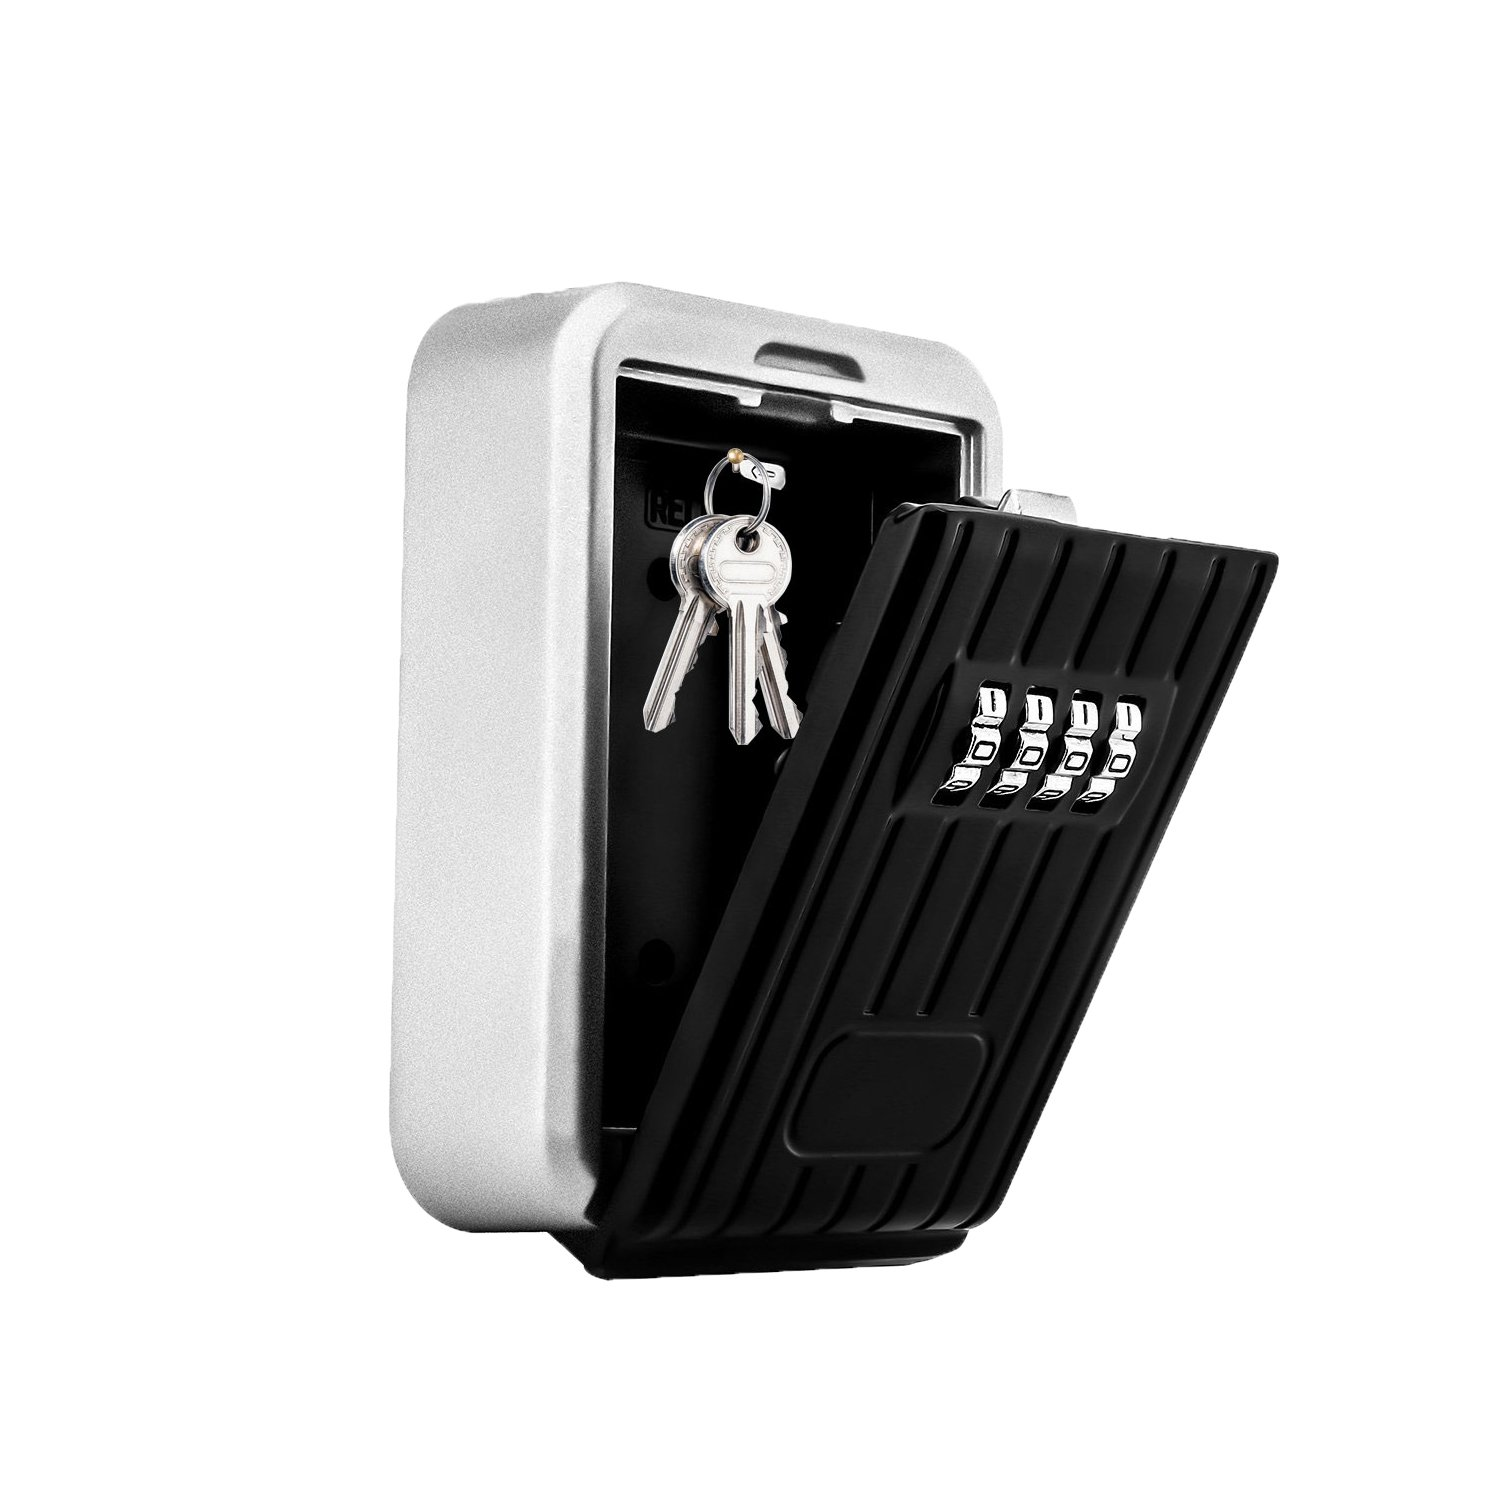 Key Lock Box,Key Storage Lock Box for House Key with 4-Digit Combination,Wall Mount Key Safe Box Weatherproof for Indoors and Outdoors (Wall Mount)